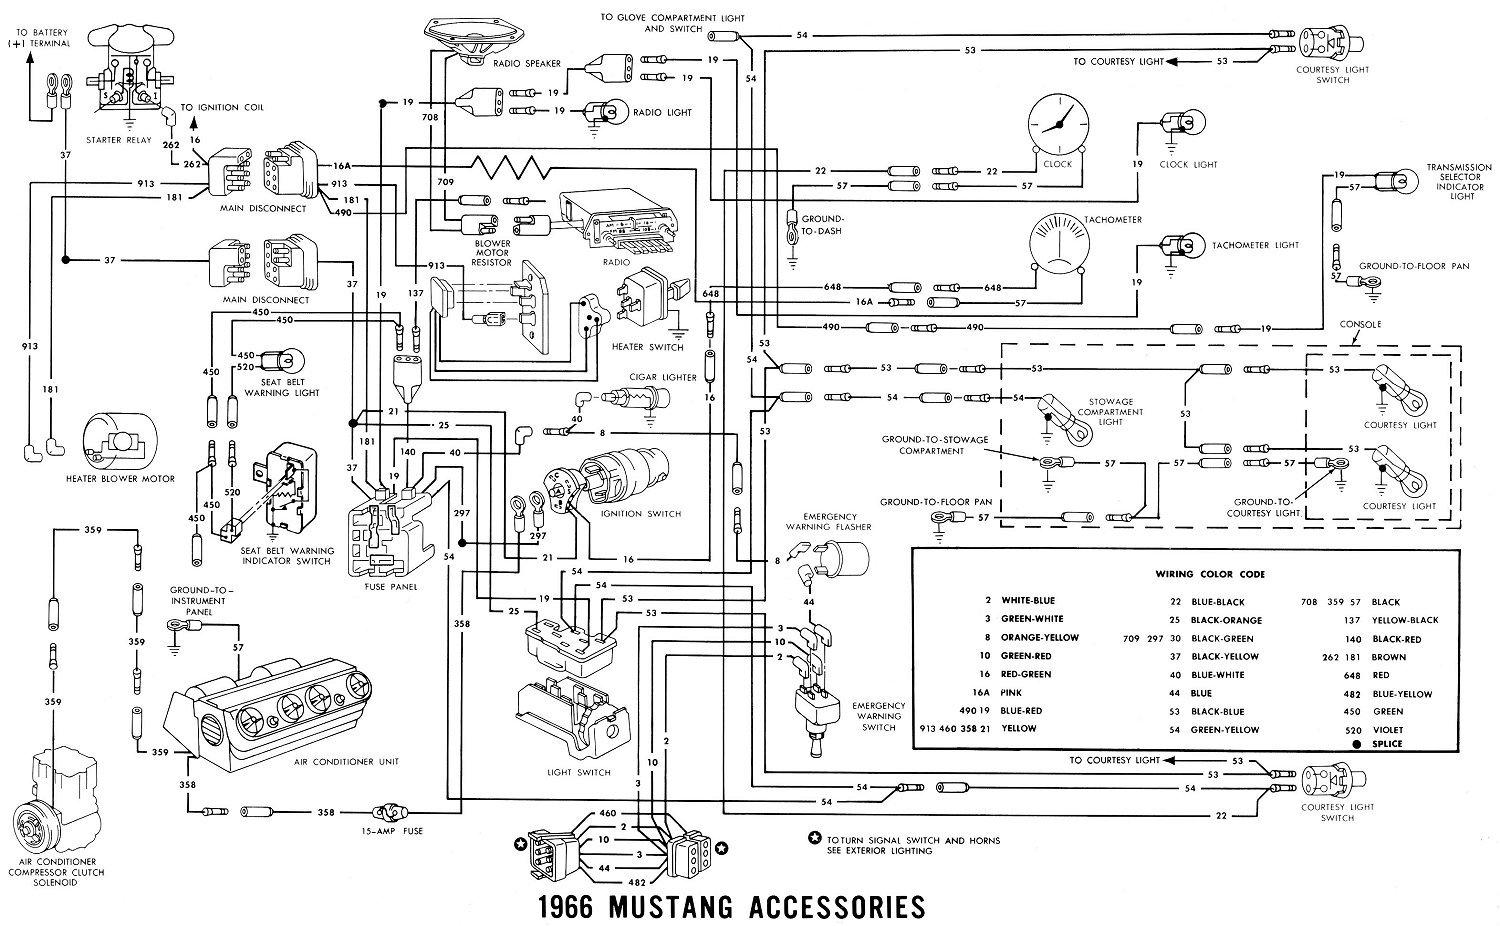 1966 mustang color wiring diagram